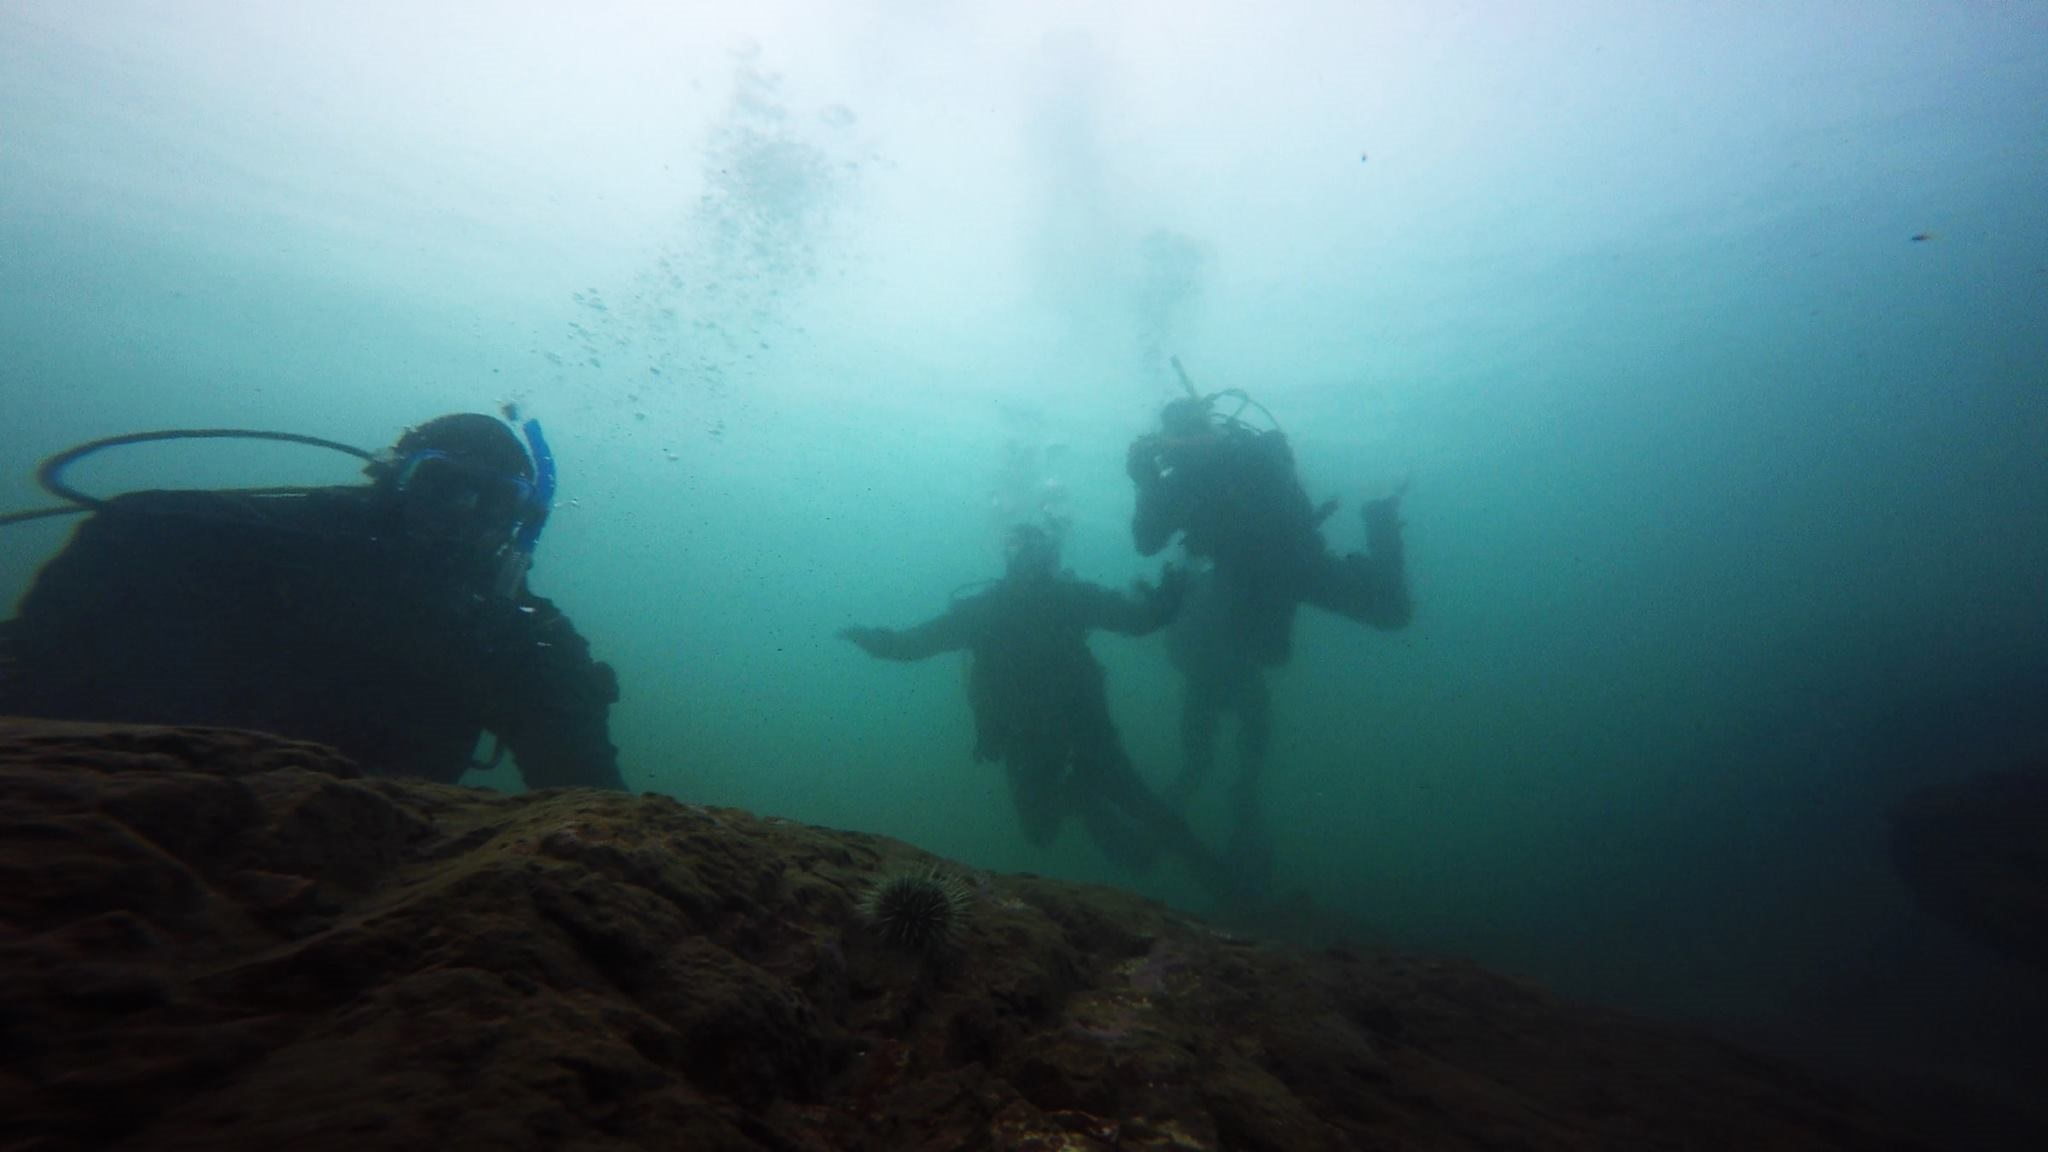 The finishing Dive 4, as part of last month PADI Open Water Diver Course. Good job everyone!